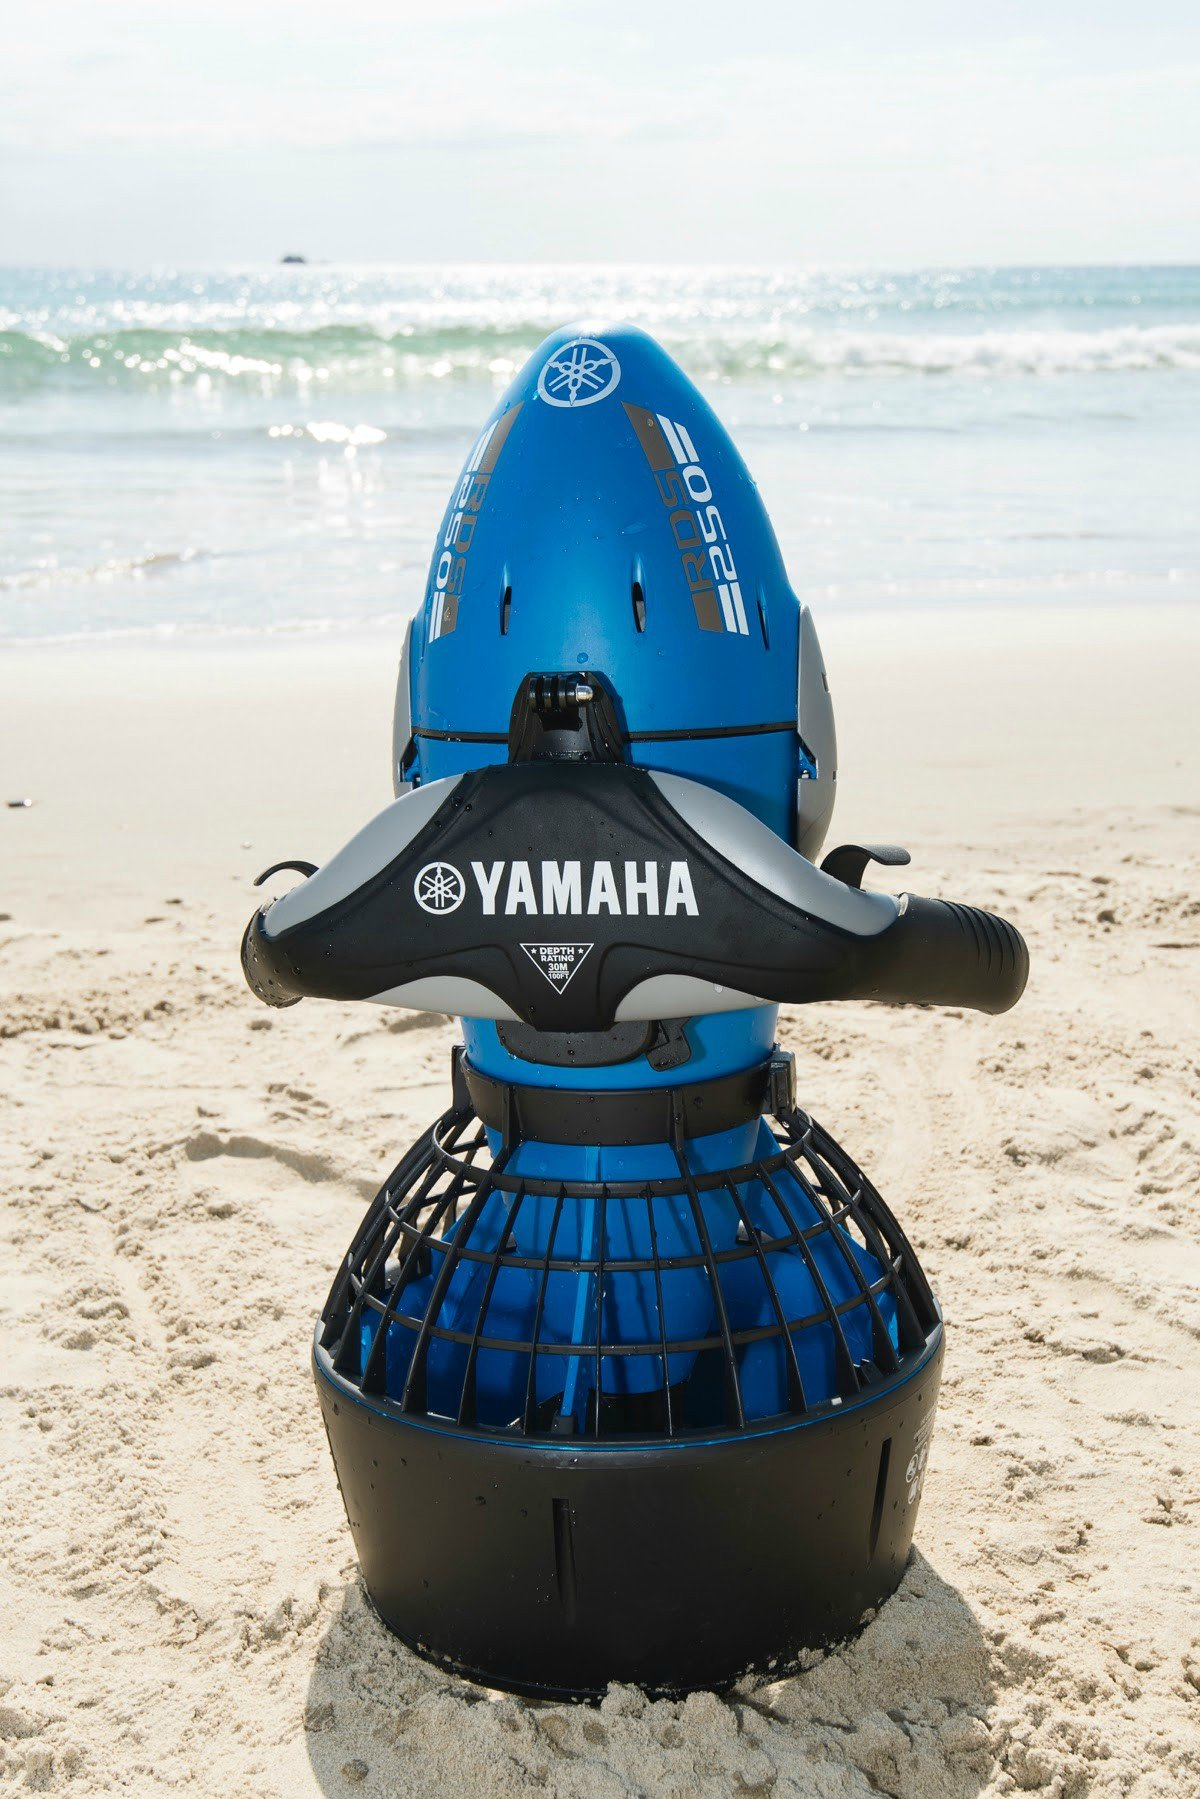 Yamaha RDS250 Seascooter with Camera Mount Recreational Dive Series Underwater Scooter by YAMAHA Seascooters (Image #3)